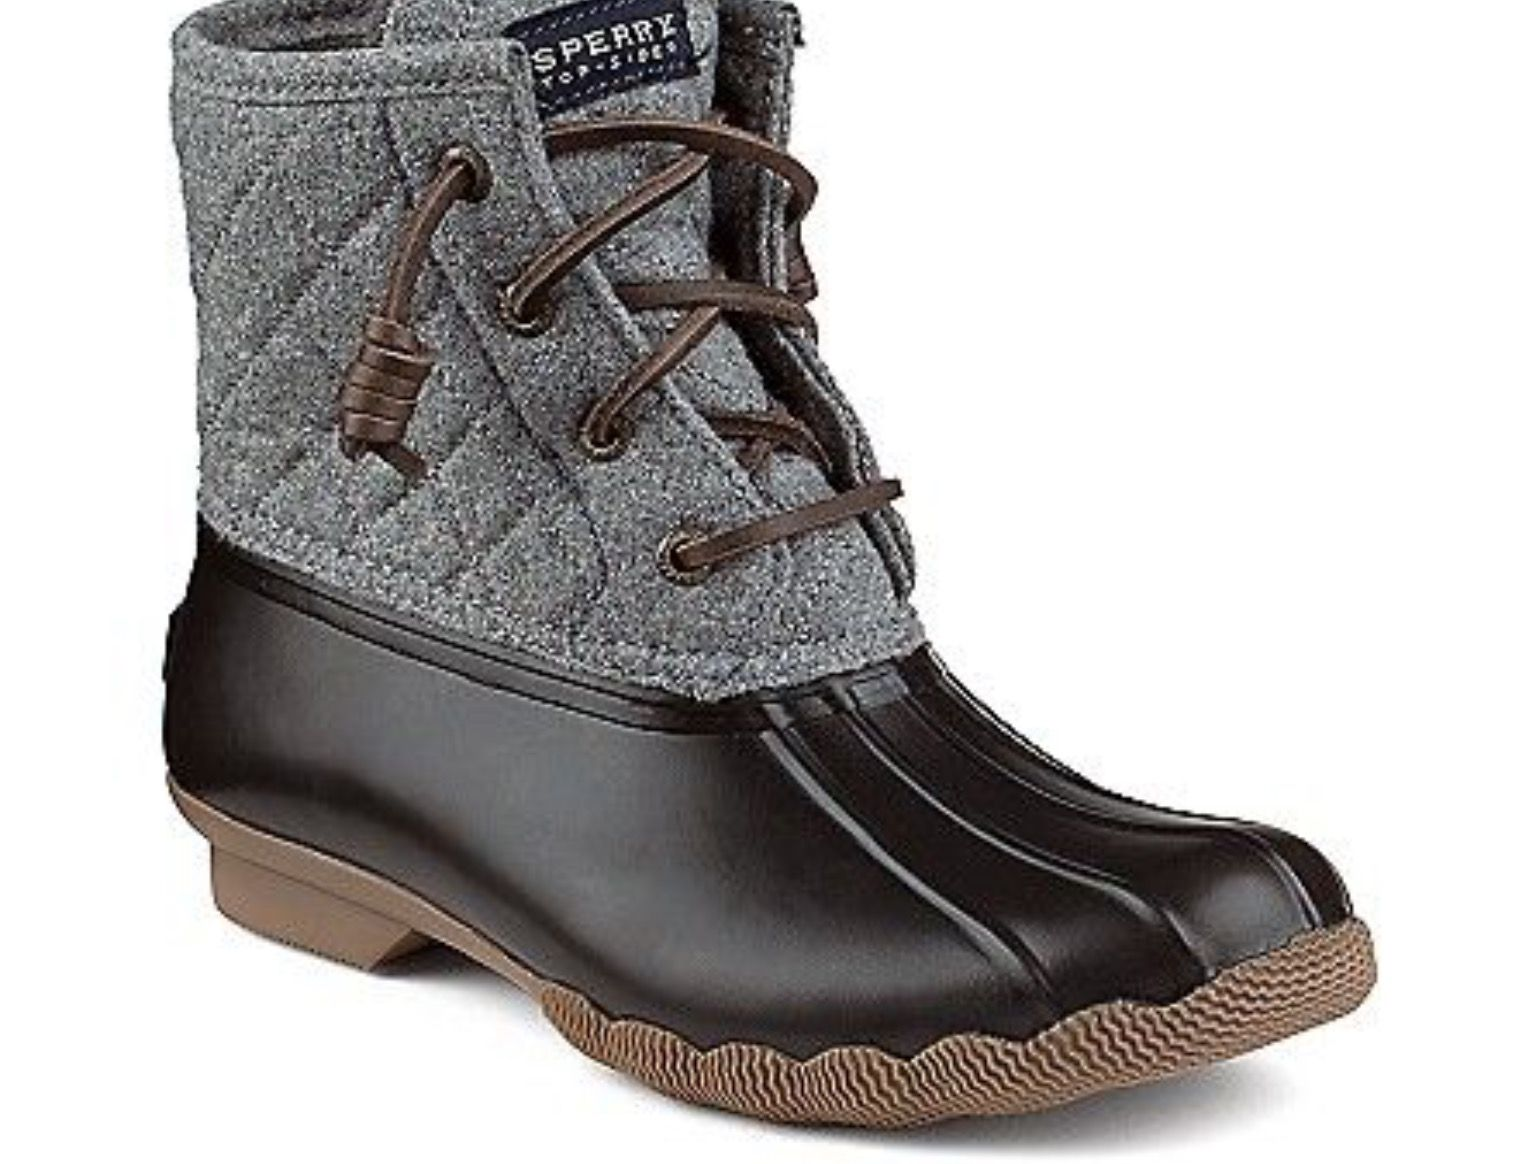 55a84a37d843 Sperrys gray duck boots